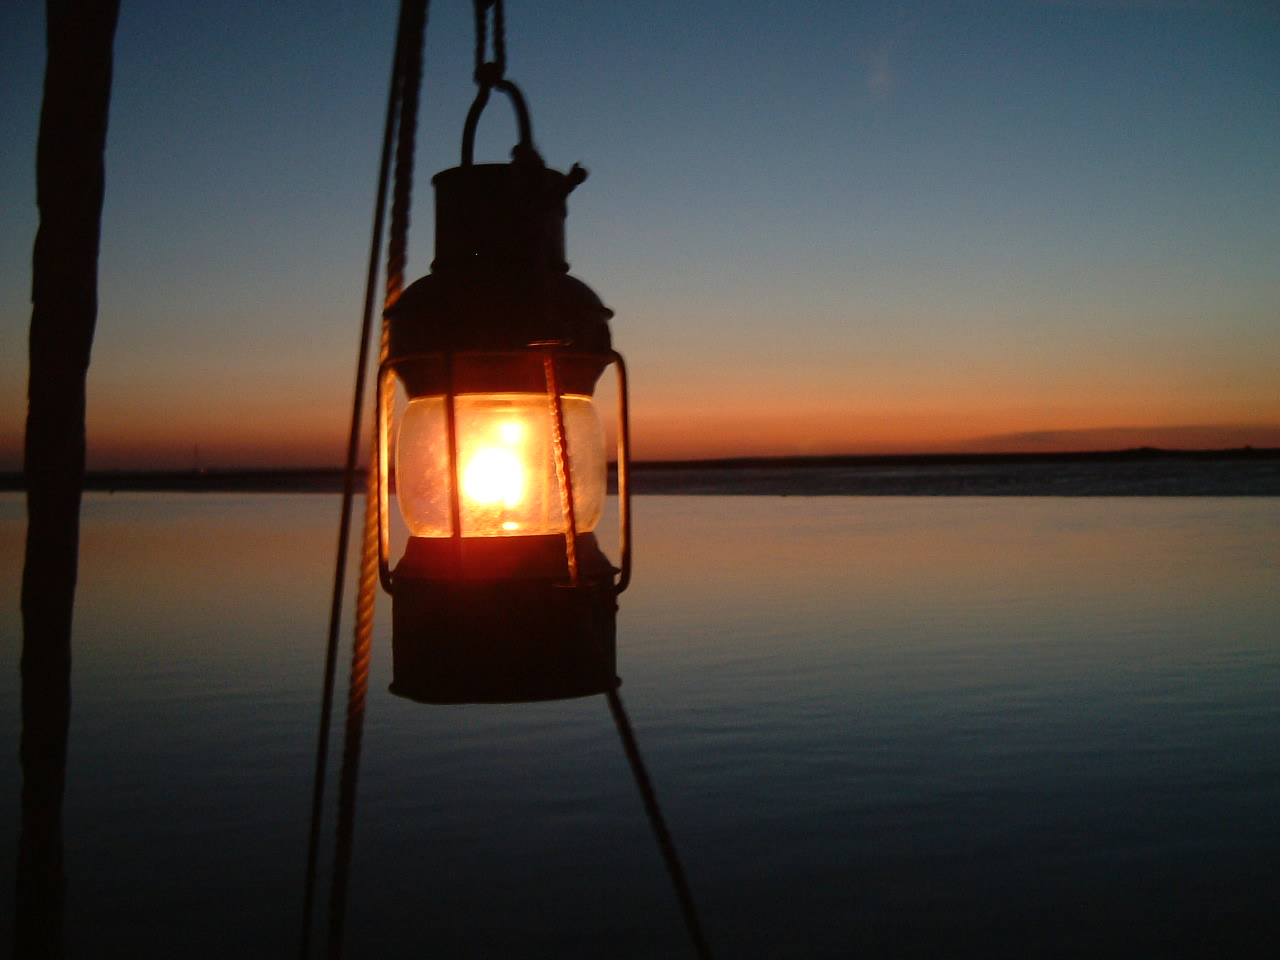 lamp and bible - photo #27